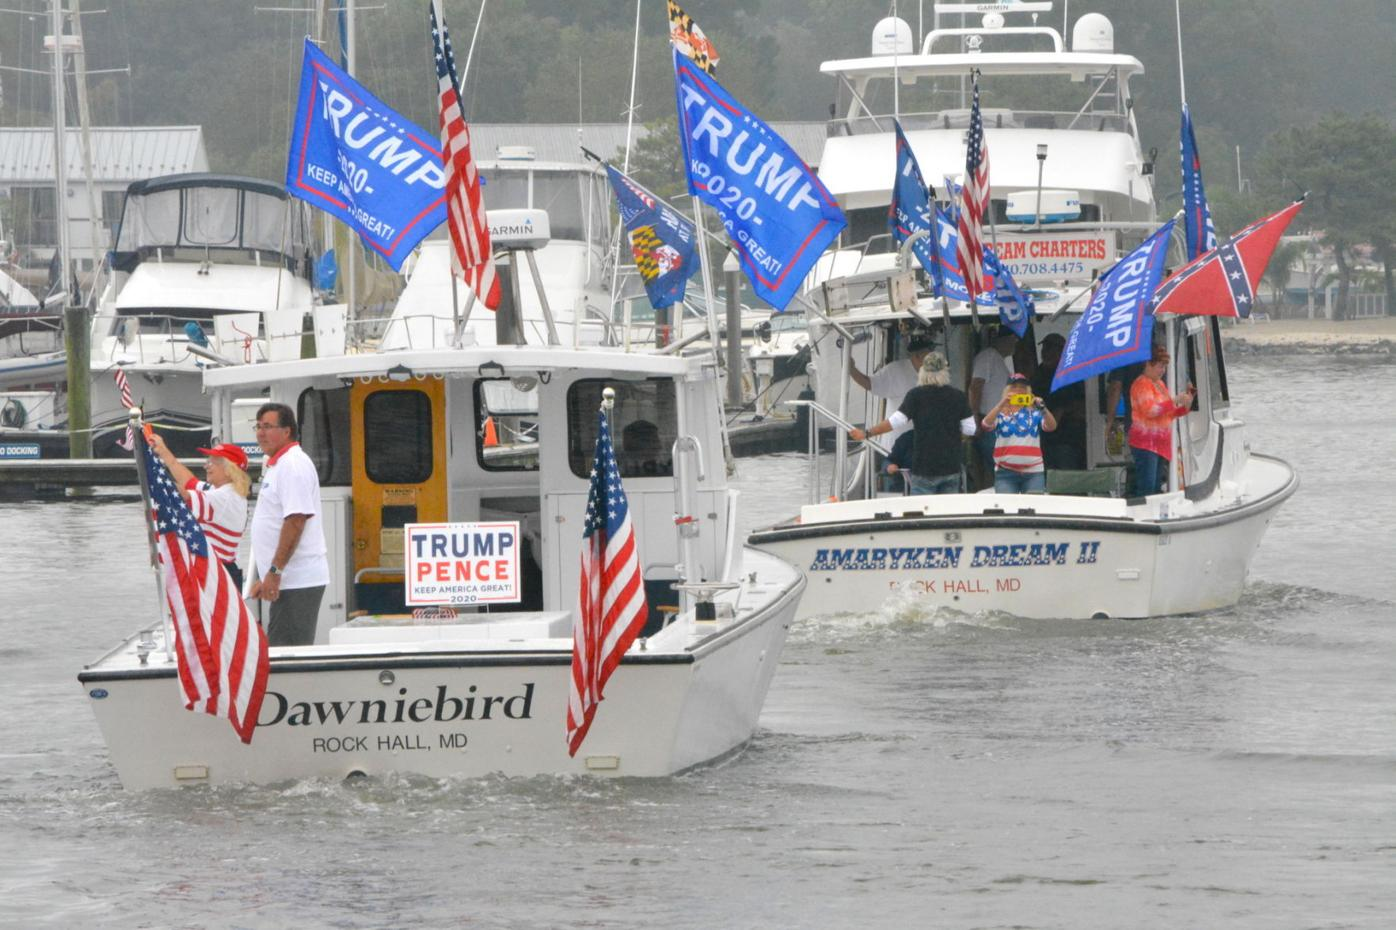 Rock Hall boaters show support for Trump